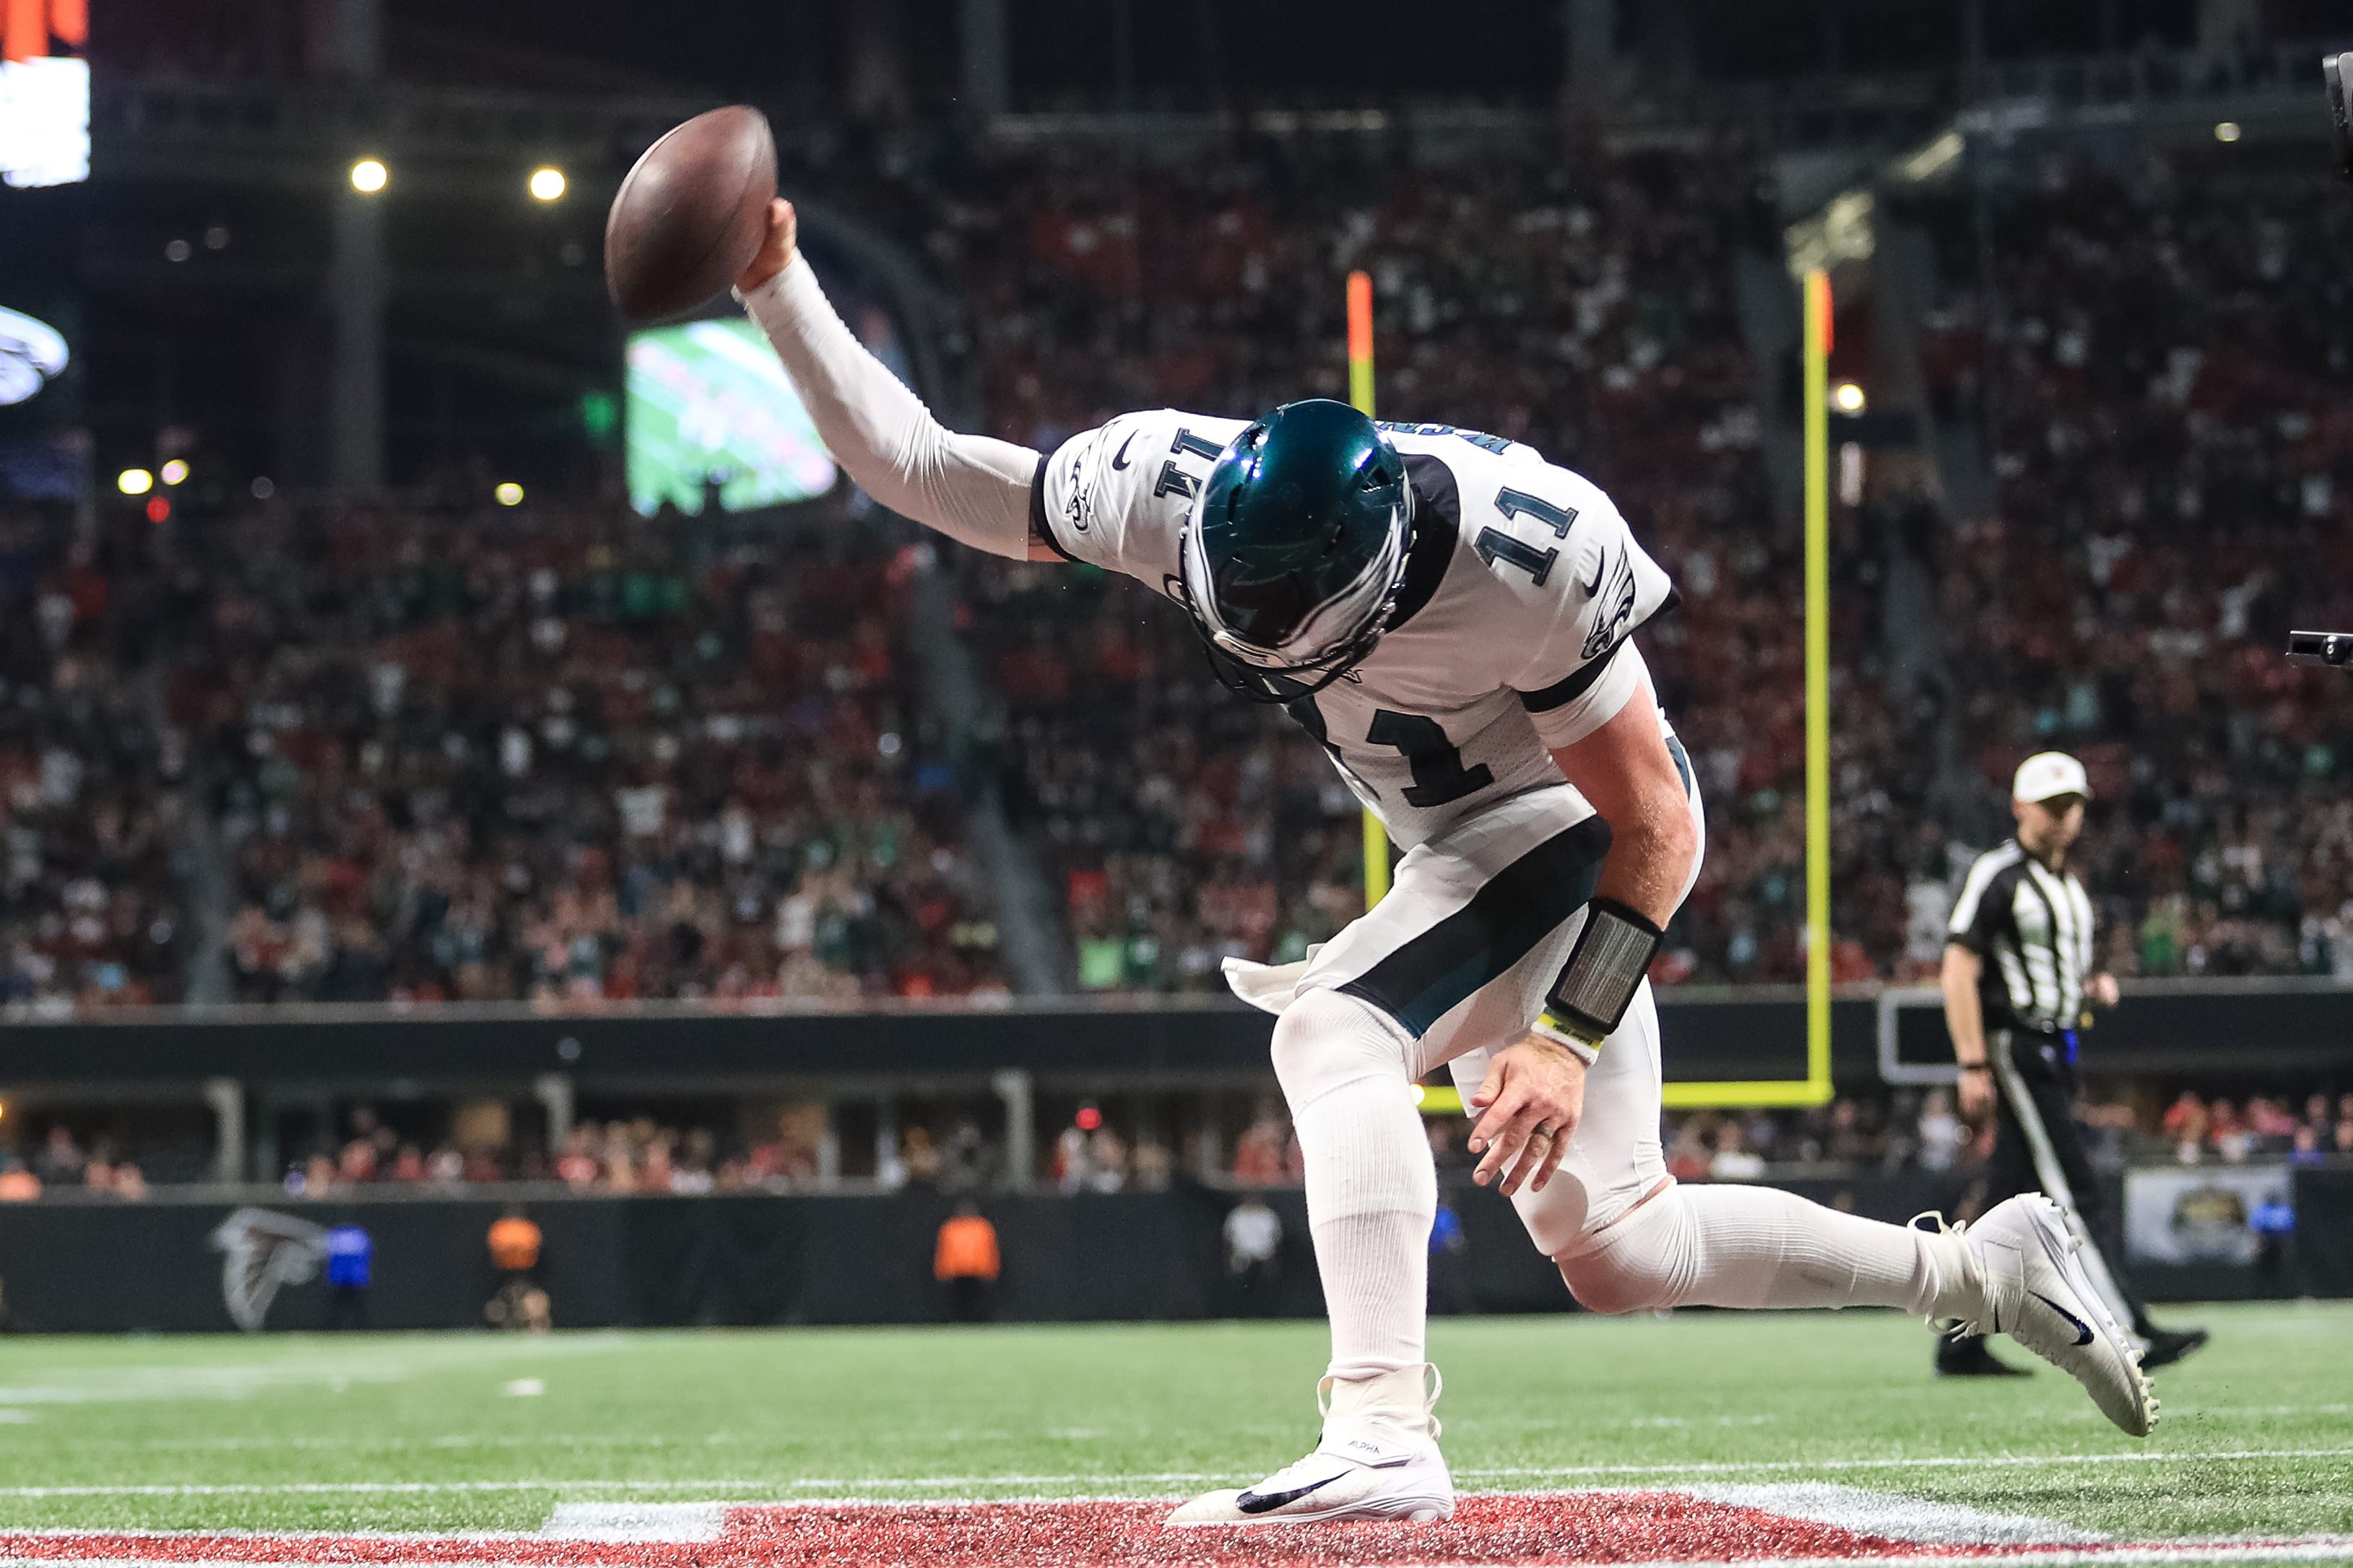 'He was a legend tonight': Eagles applaud a demonstrative Carson Wentz's effort, leadership despite falling short at Falcons